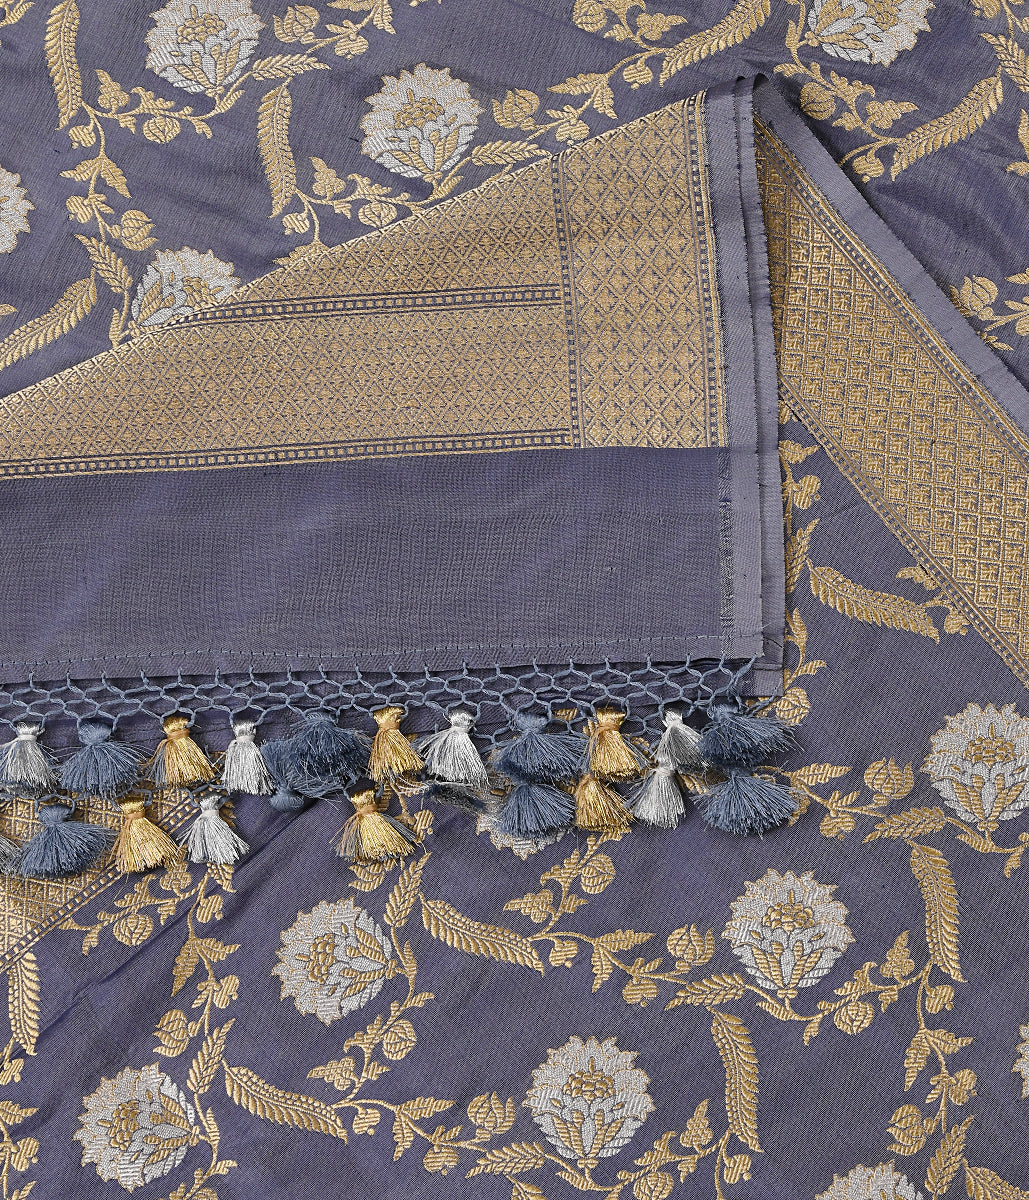 Handwoven Grey Katan Silk Dupatta in Kadhwa Weave